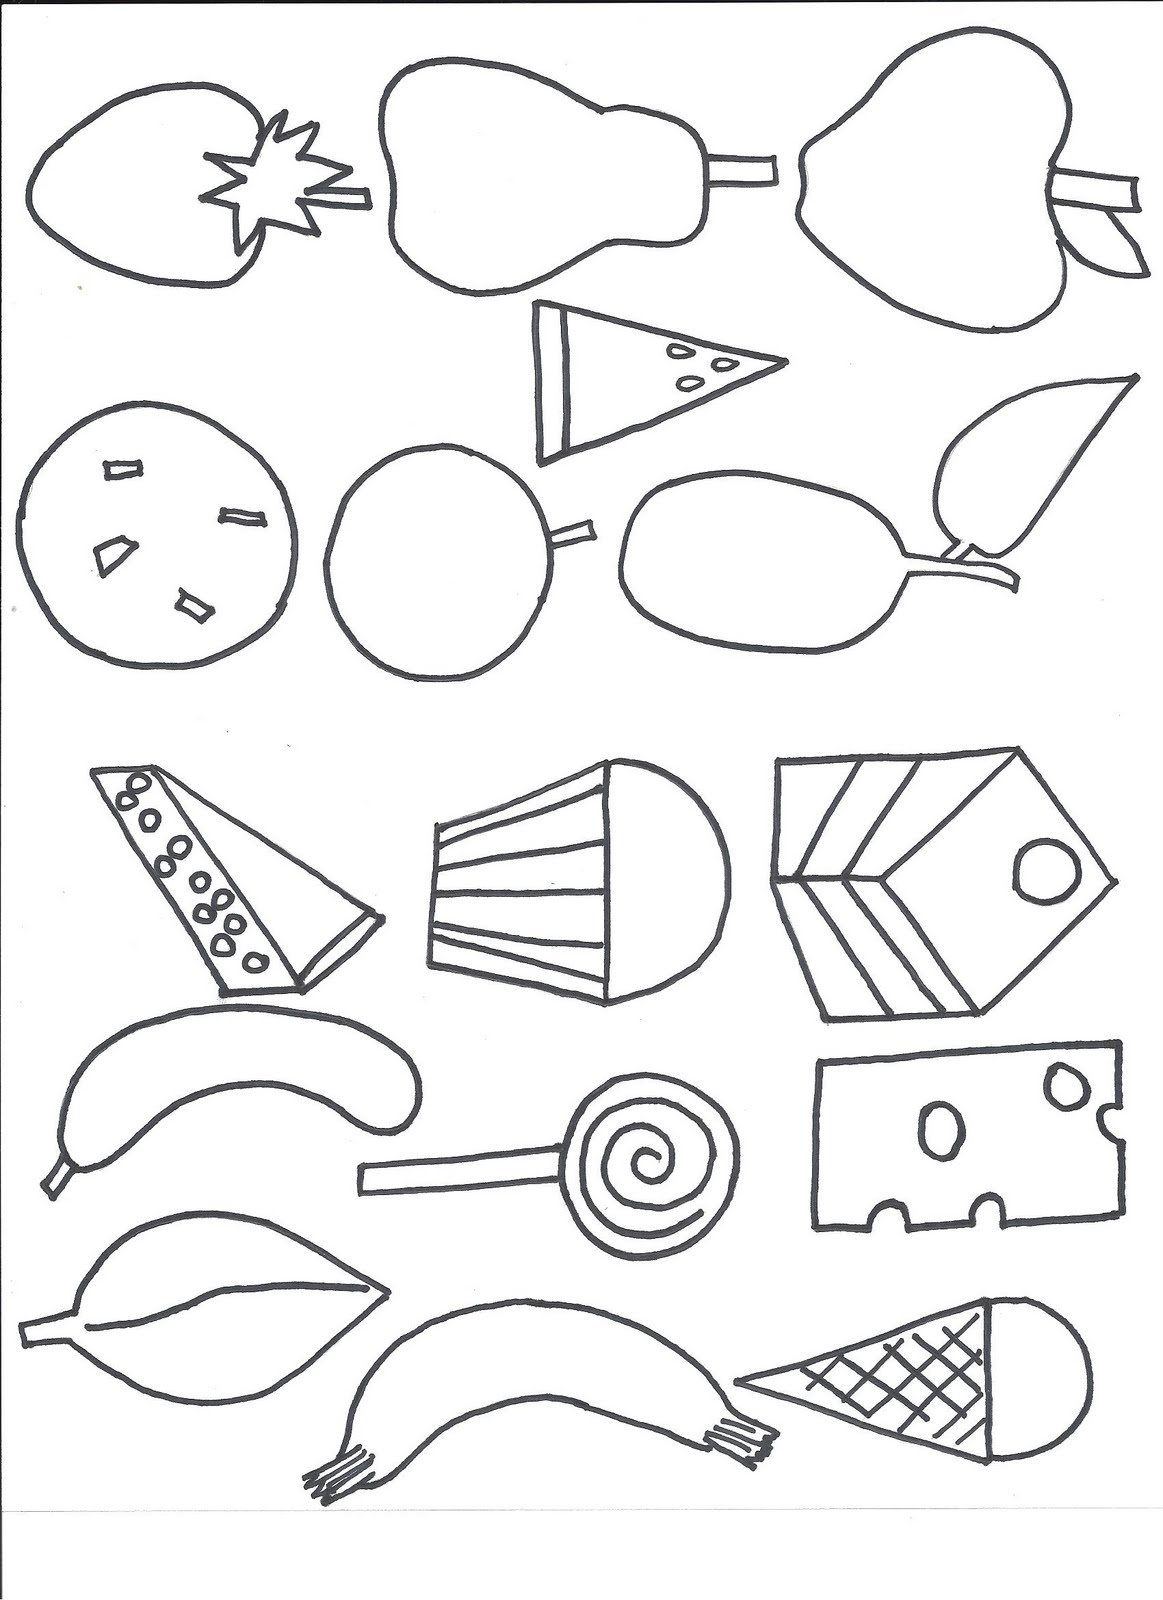 Crafts For Preschoolers: Templates